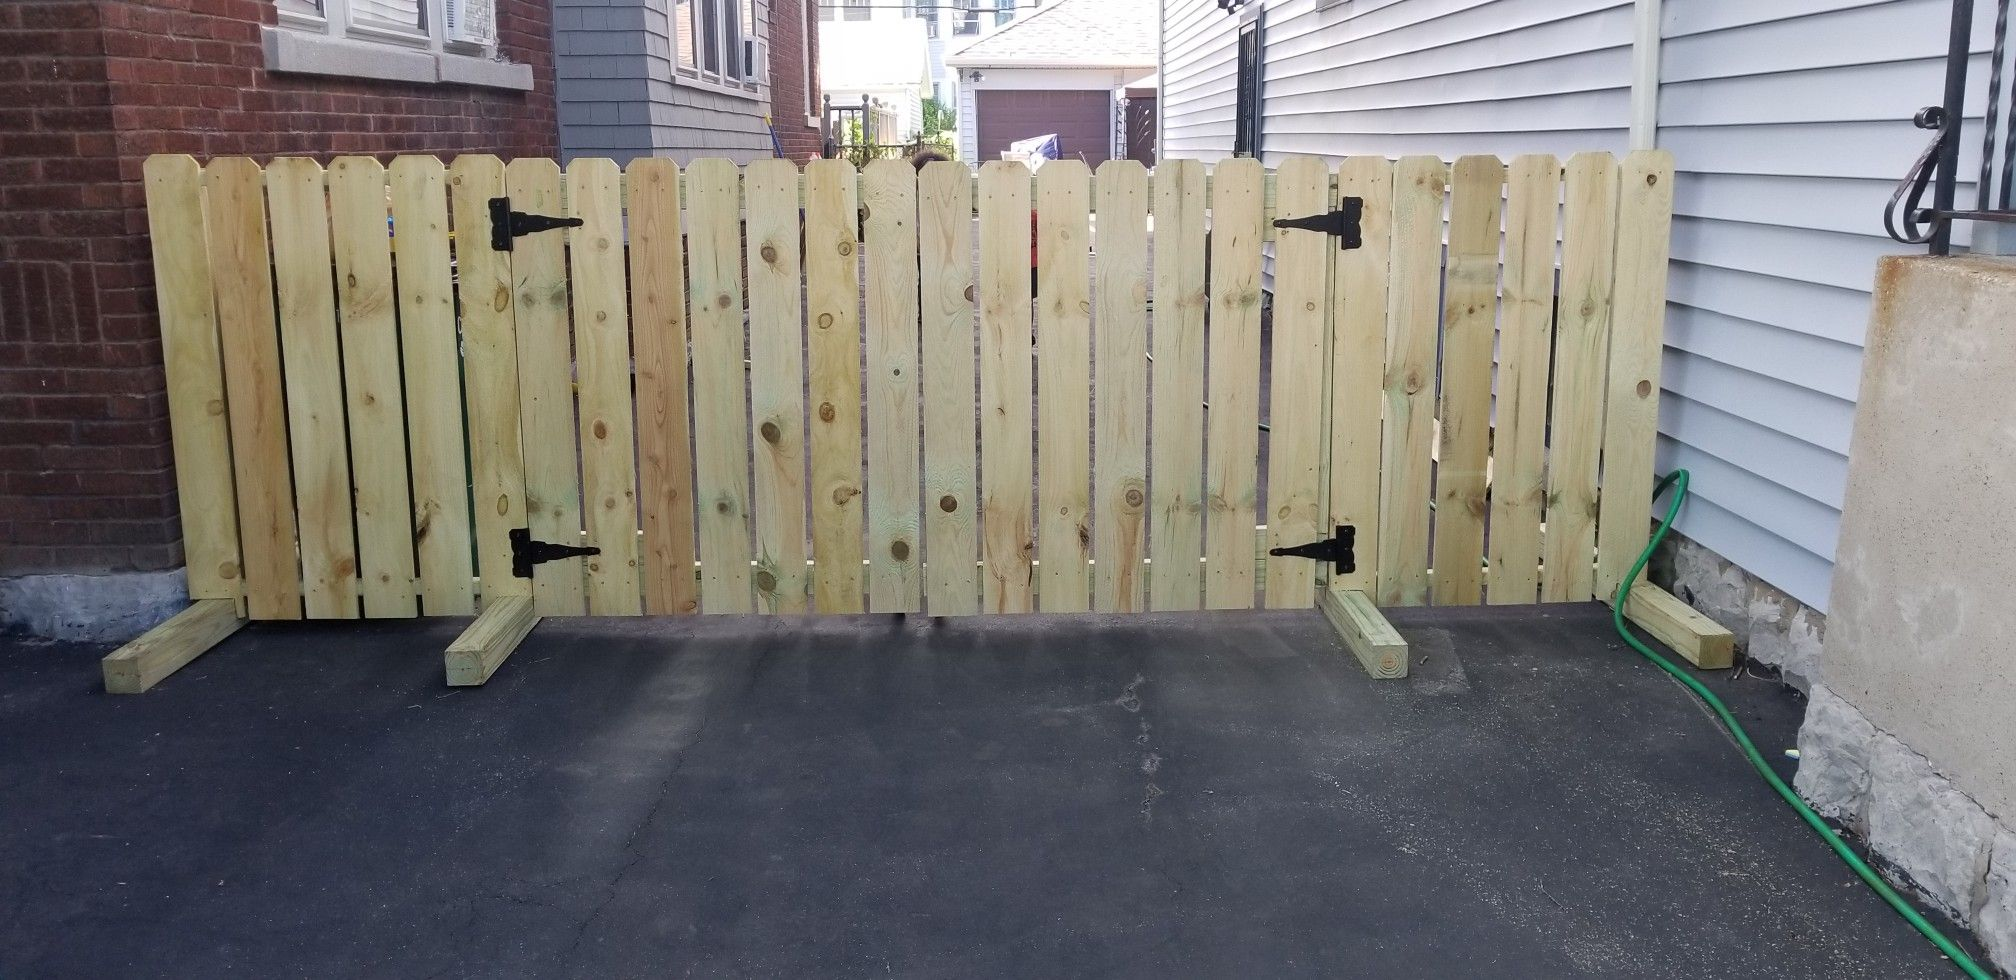 Diy Driveway Fence For Renters No Drilling Into Ground Portable Fence Diy Driveway Portable Fence Driveway Fence